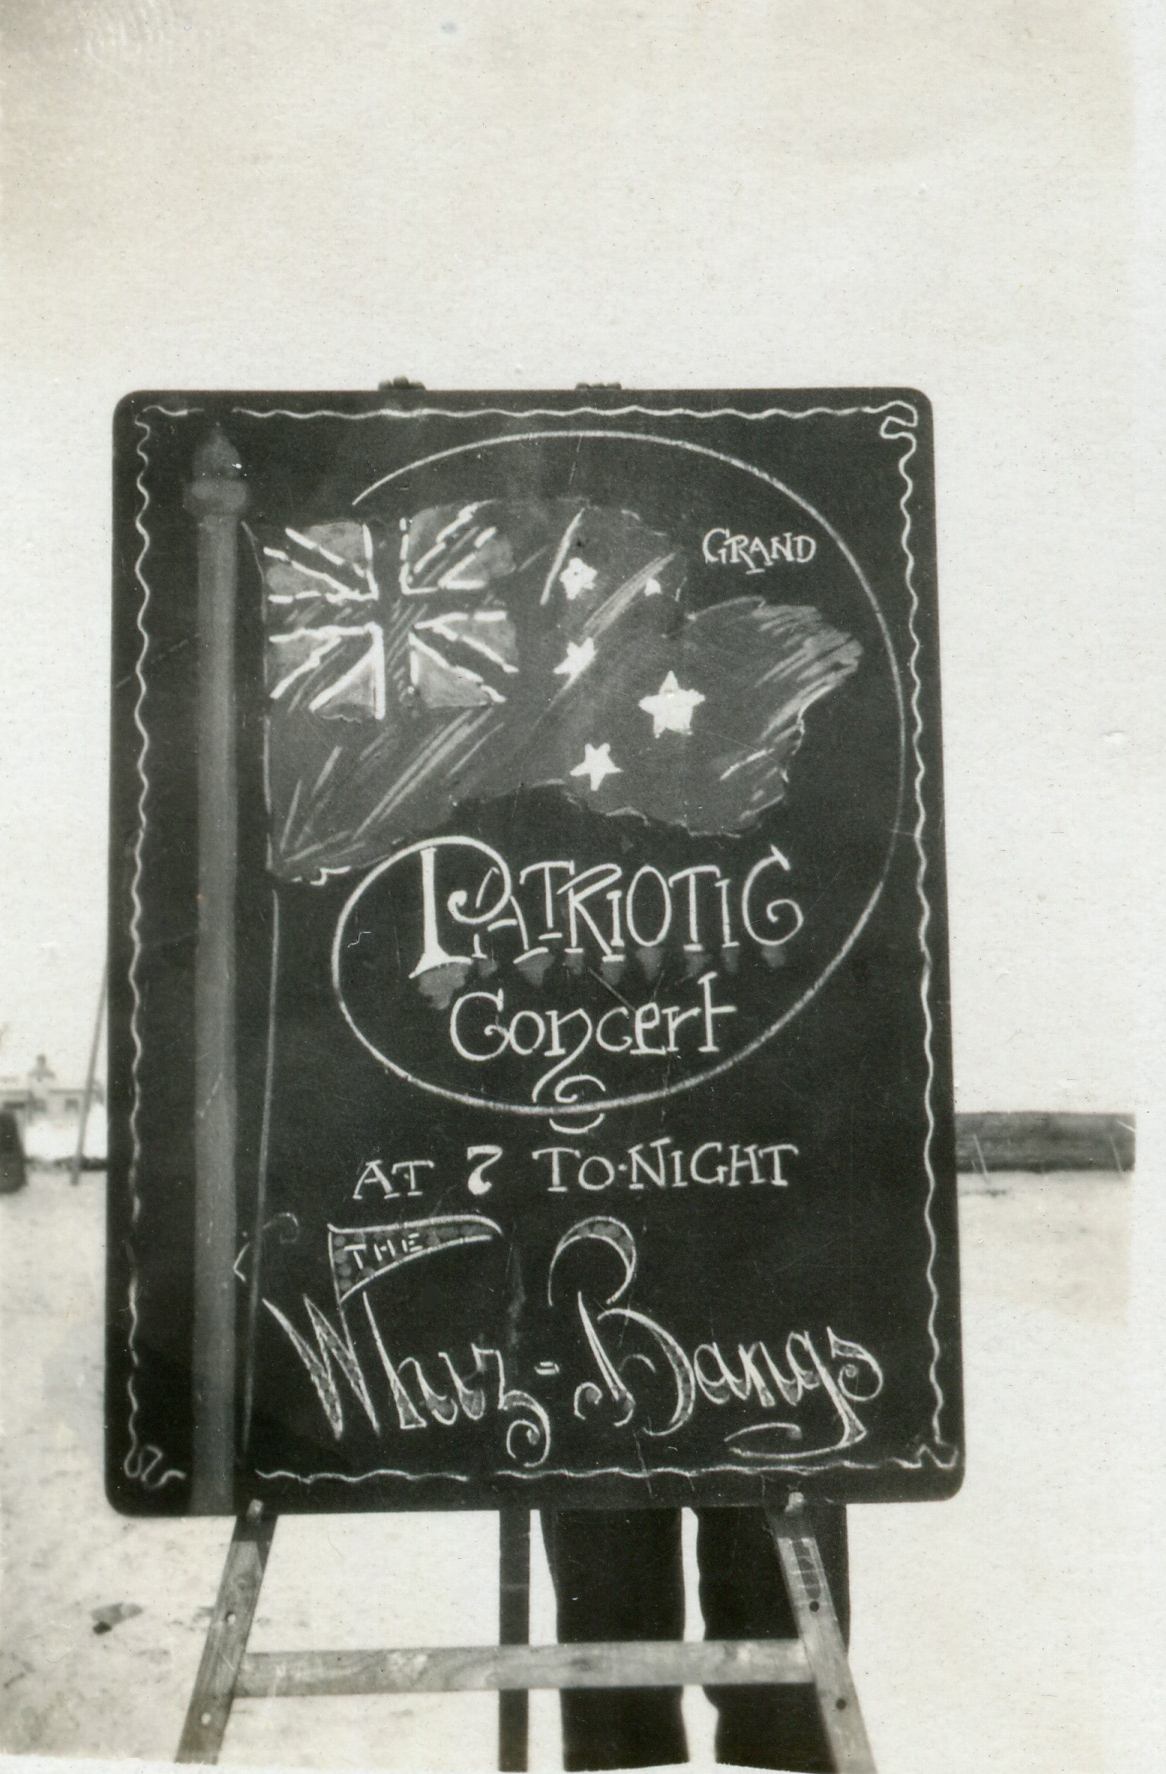 Grand Patriotic Concert by the Whiz Bangs, date unknown